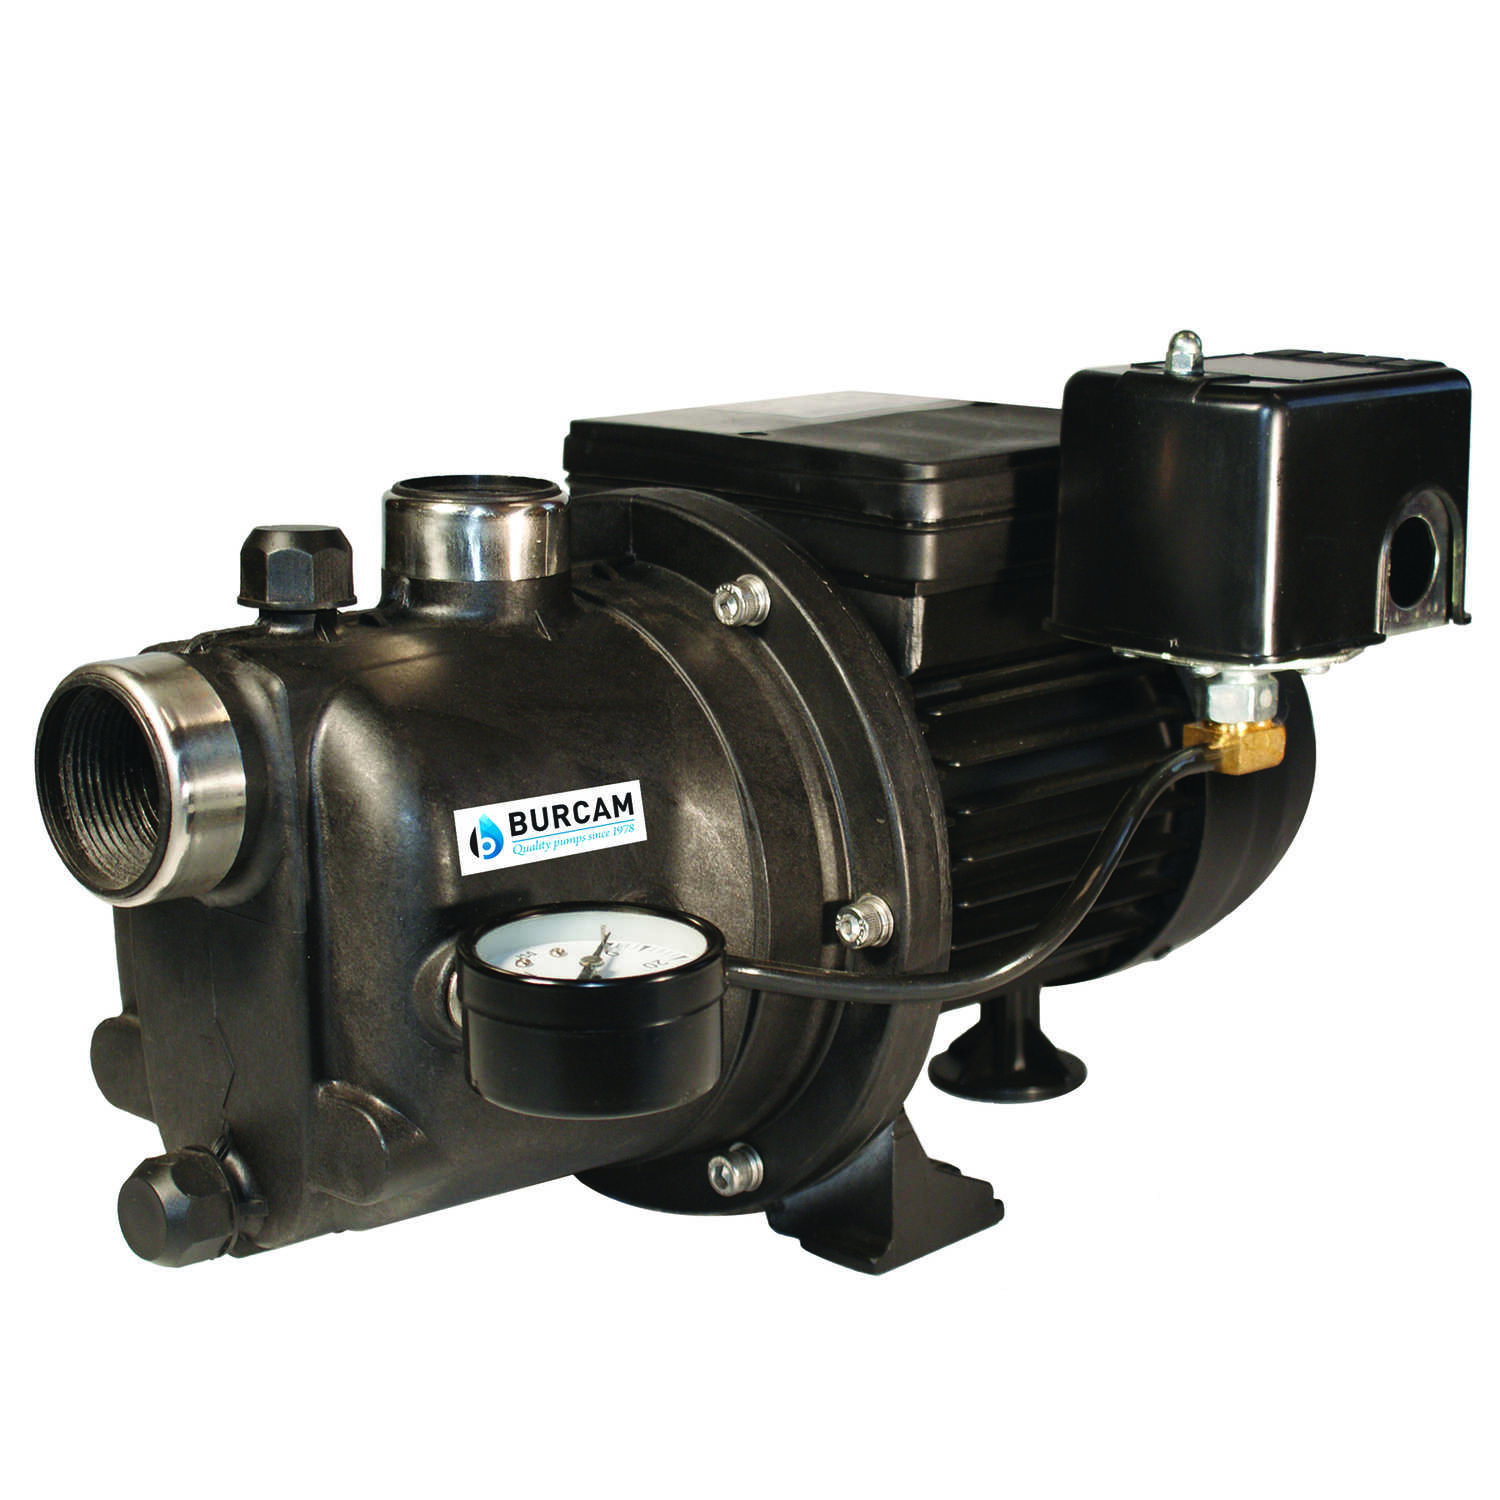 Burcam  Thermoplastic  Shallow Well Jet Pump  3/4 hp 850 gph